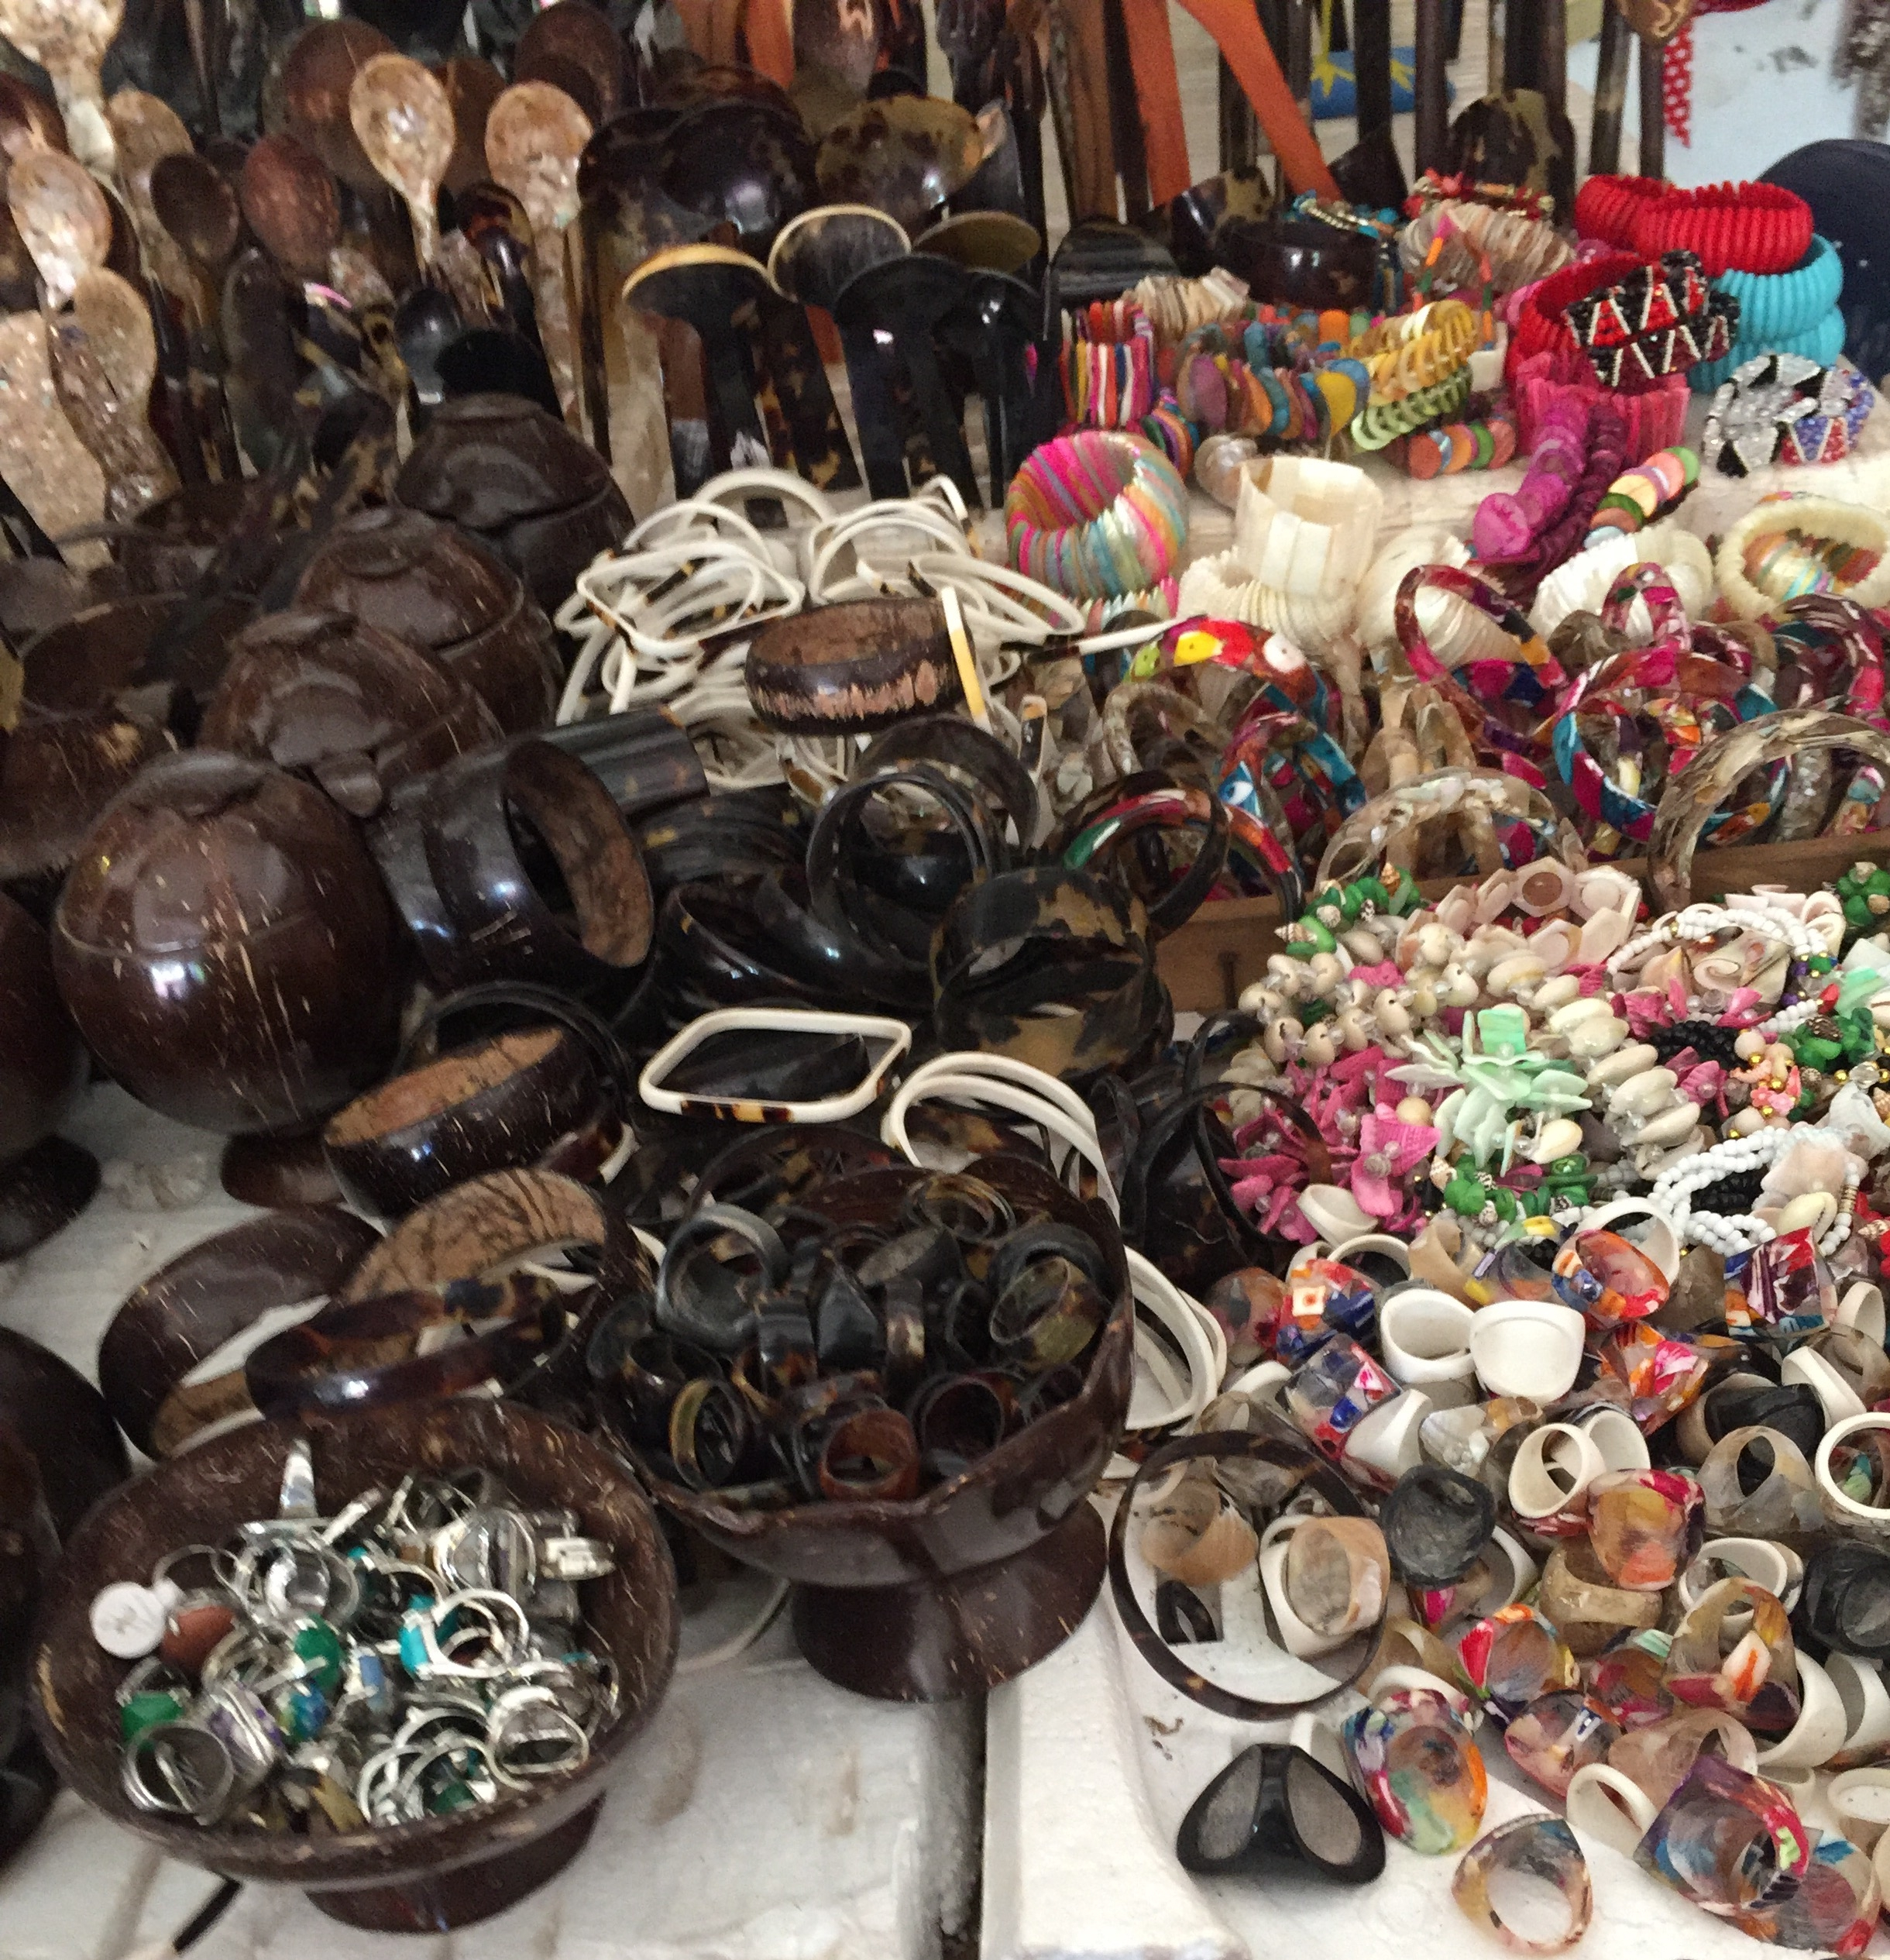 Turtleshell and other products for sale in Rincon del Mar